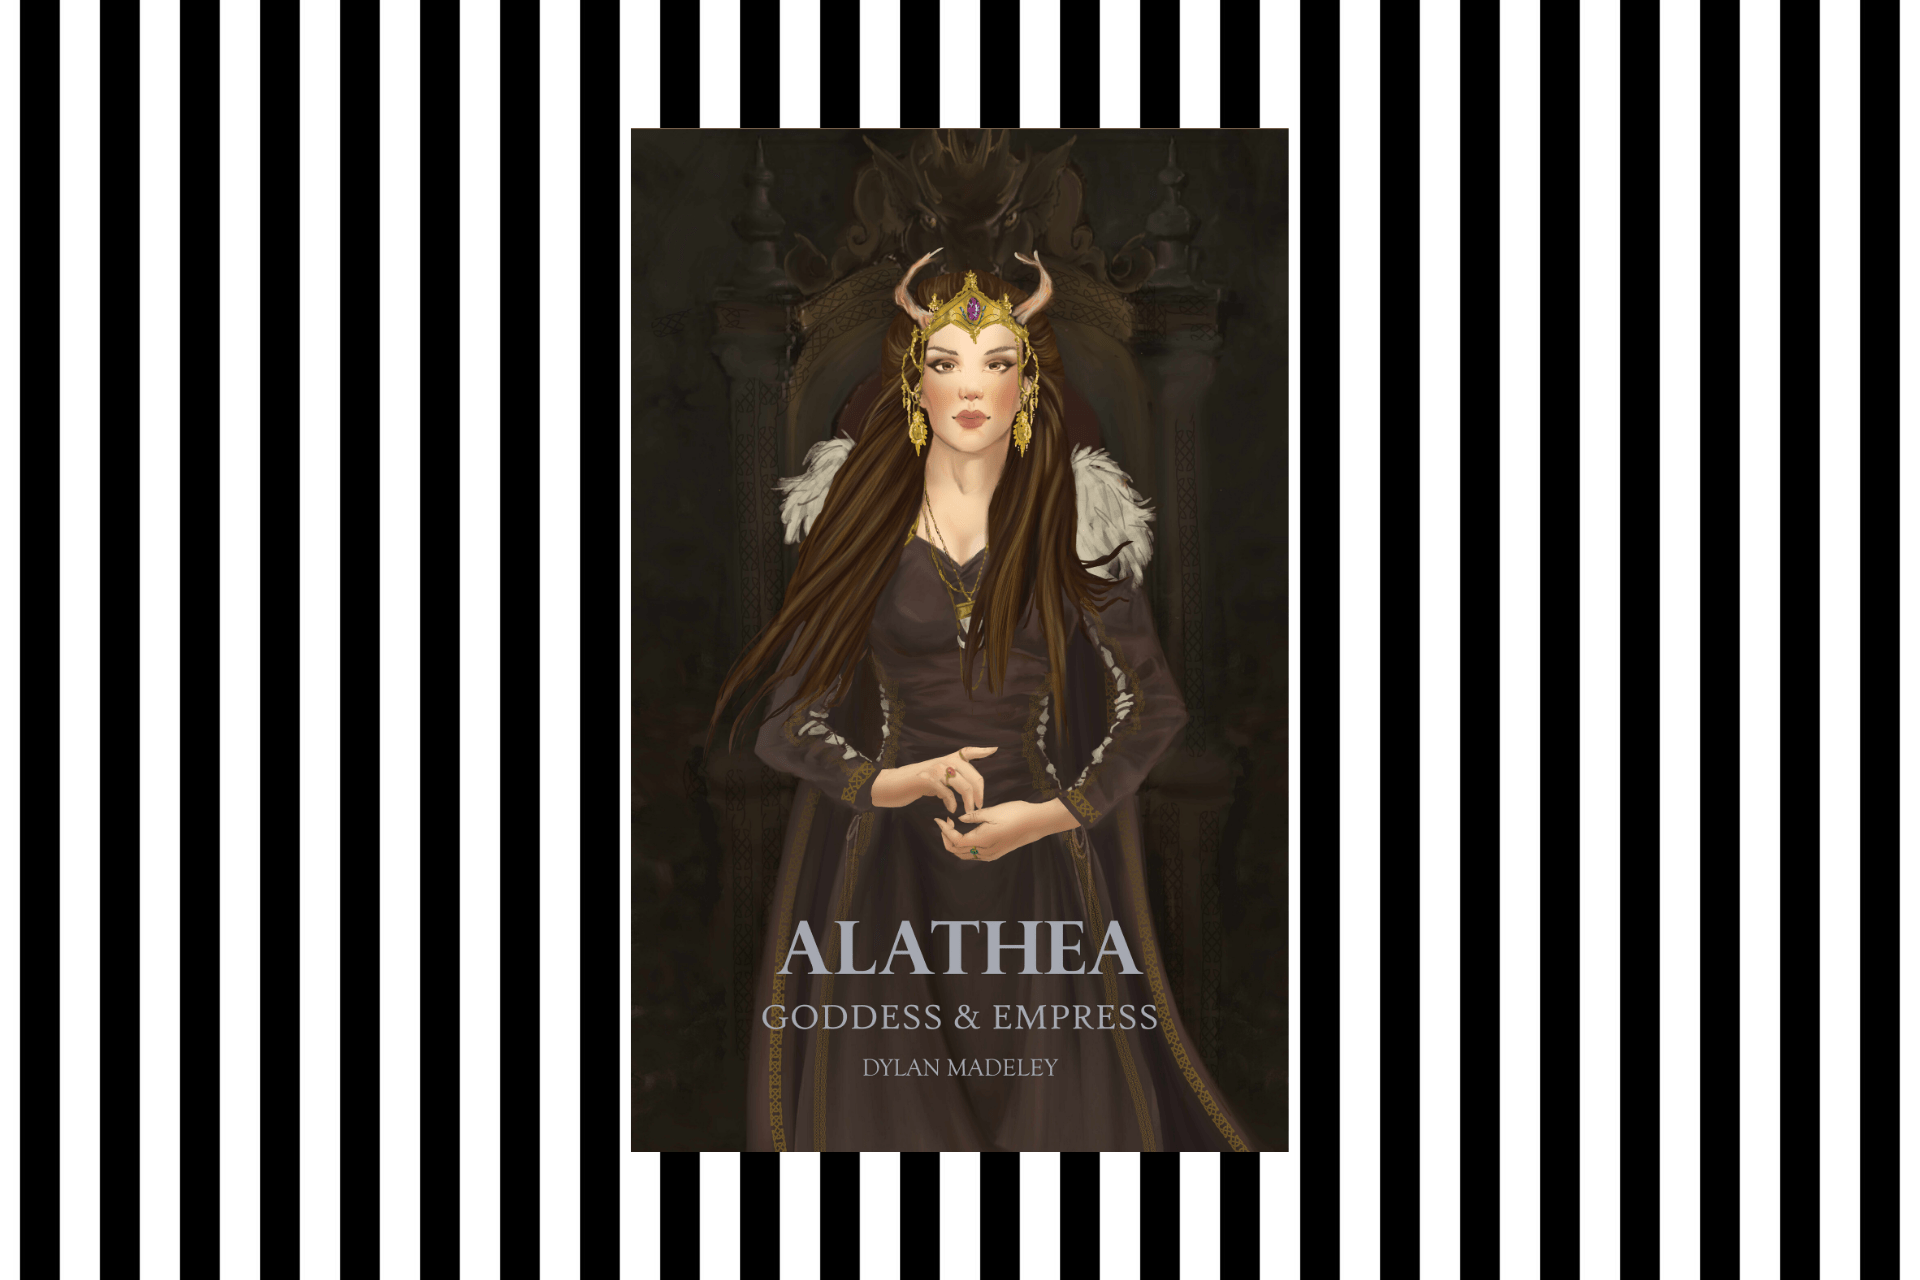 The cover of Alathea: Goddess & Empress, by Dylan Madeley